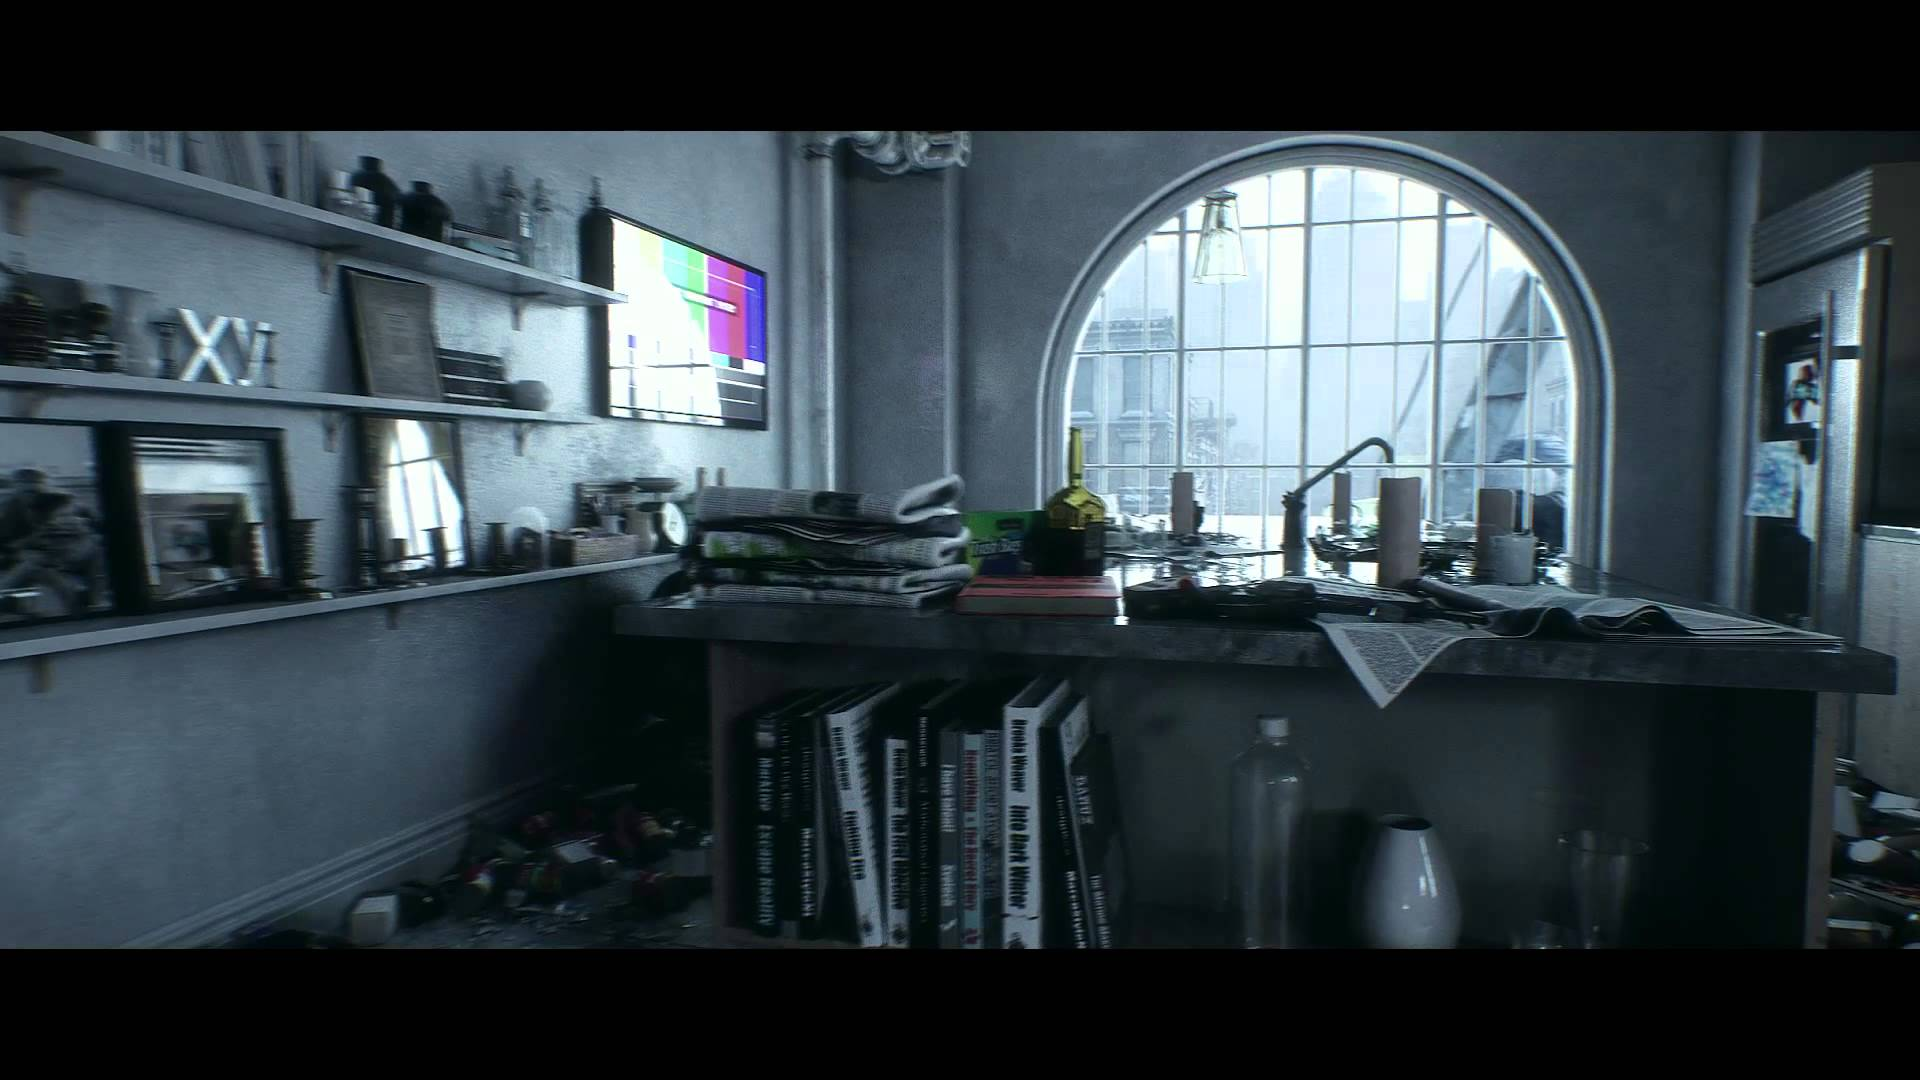 Tom Clancy's The Division – Cinematic Trailer